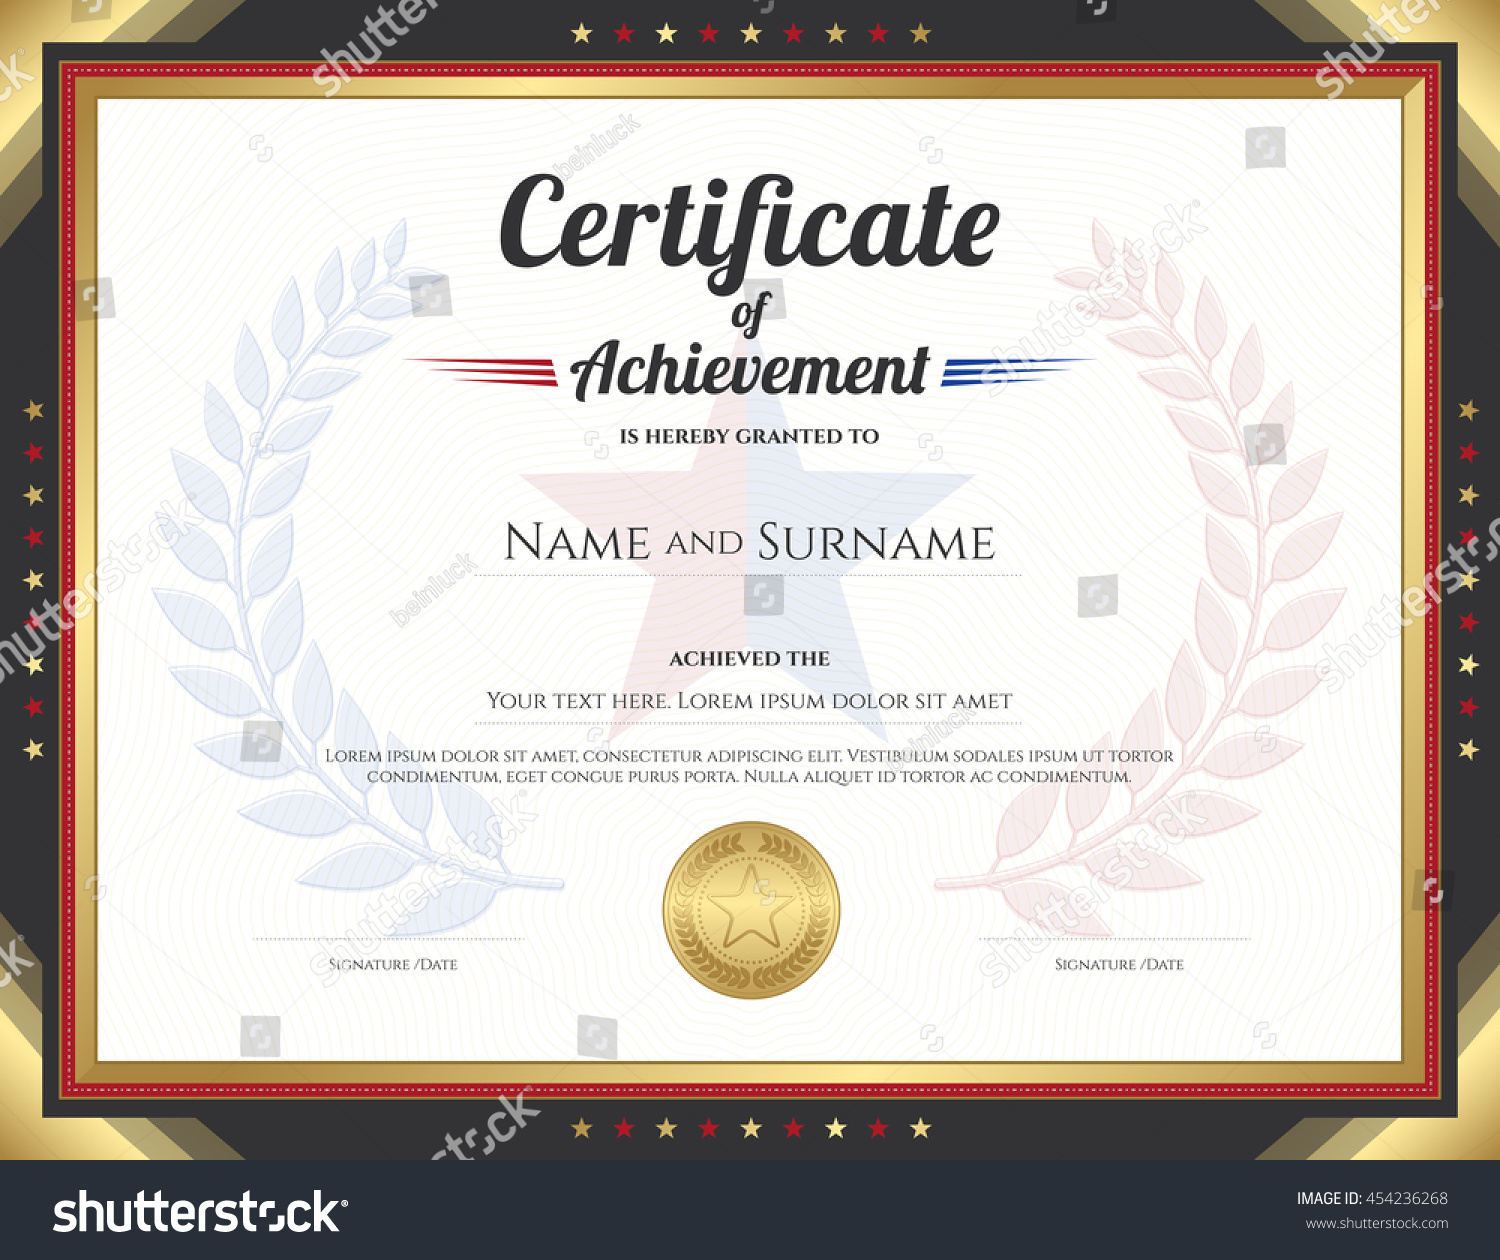 Certificate achievement template gold border theme stock vector certificate of achievement template with gold border theme and awarded wreath and star background alramifo Image collections